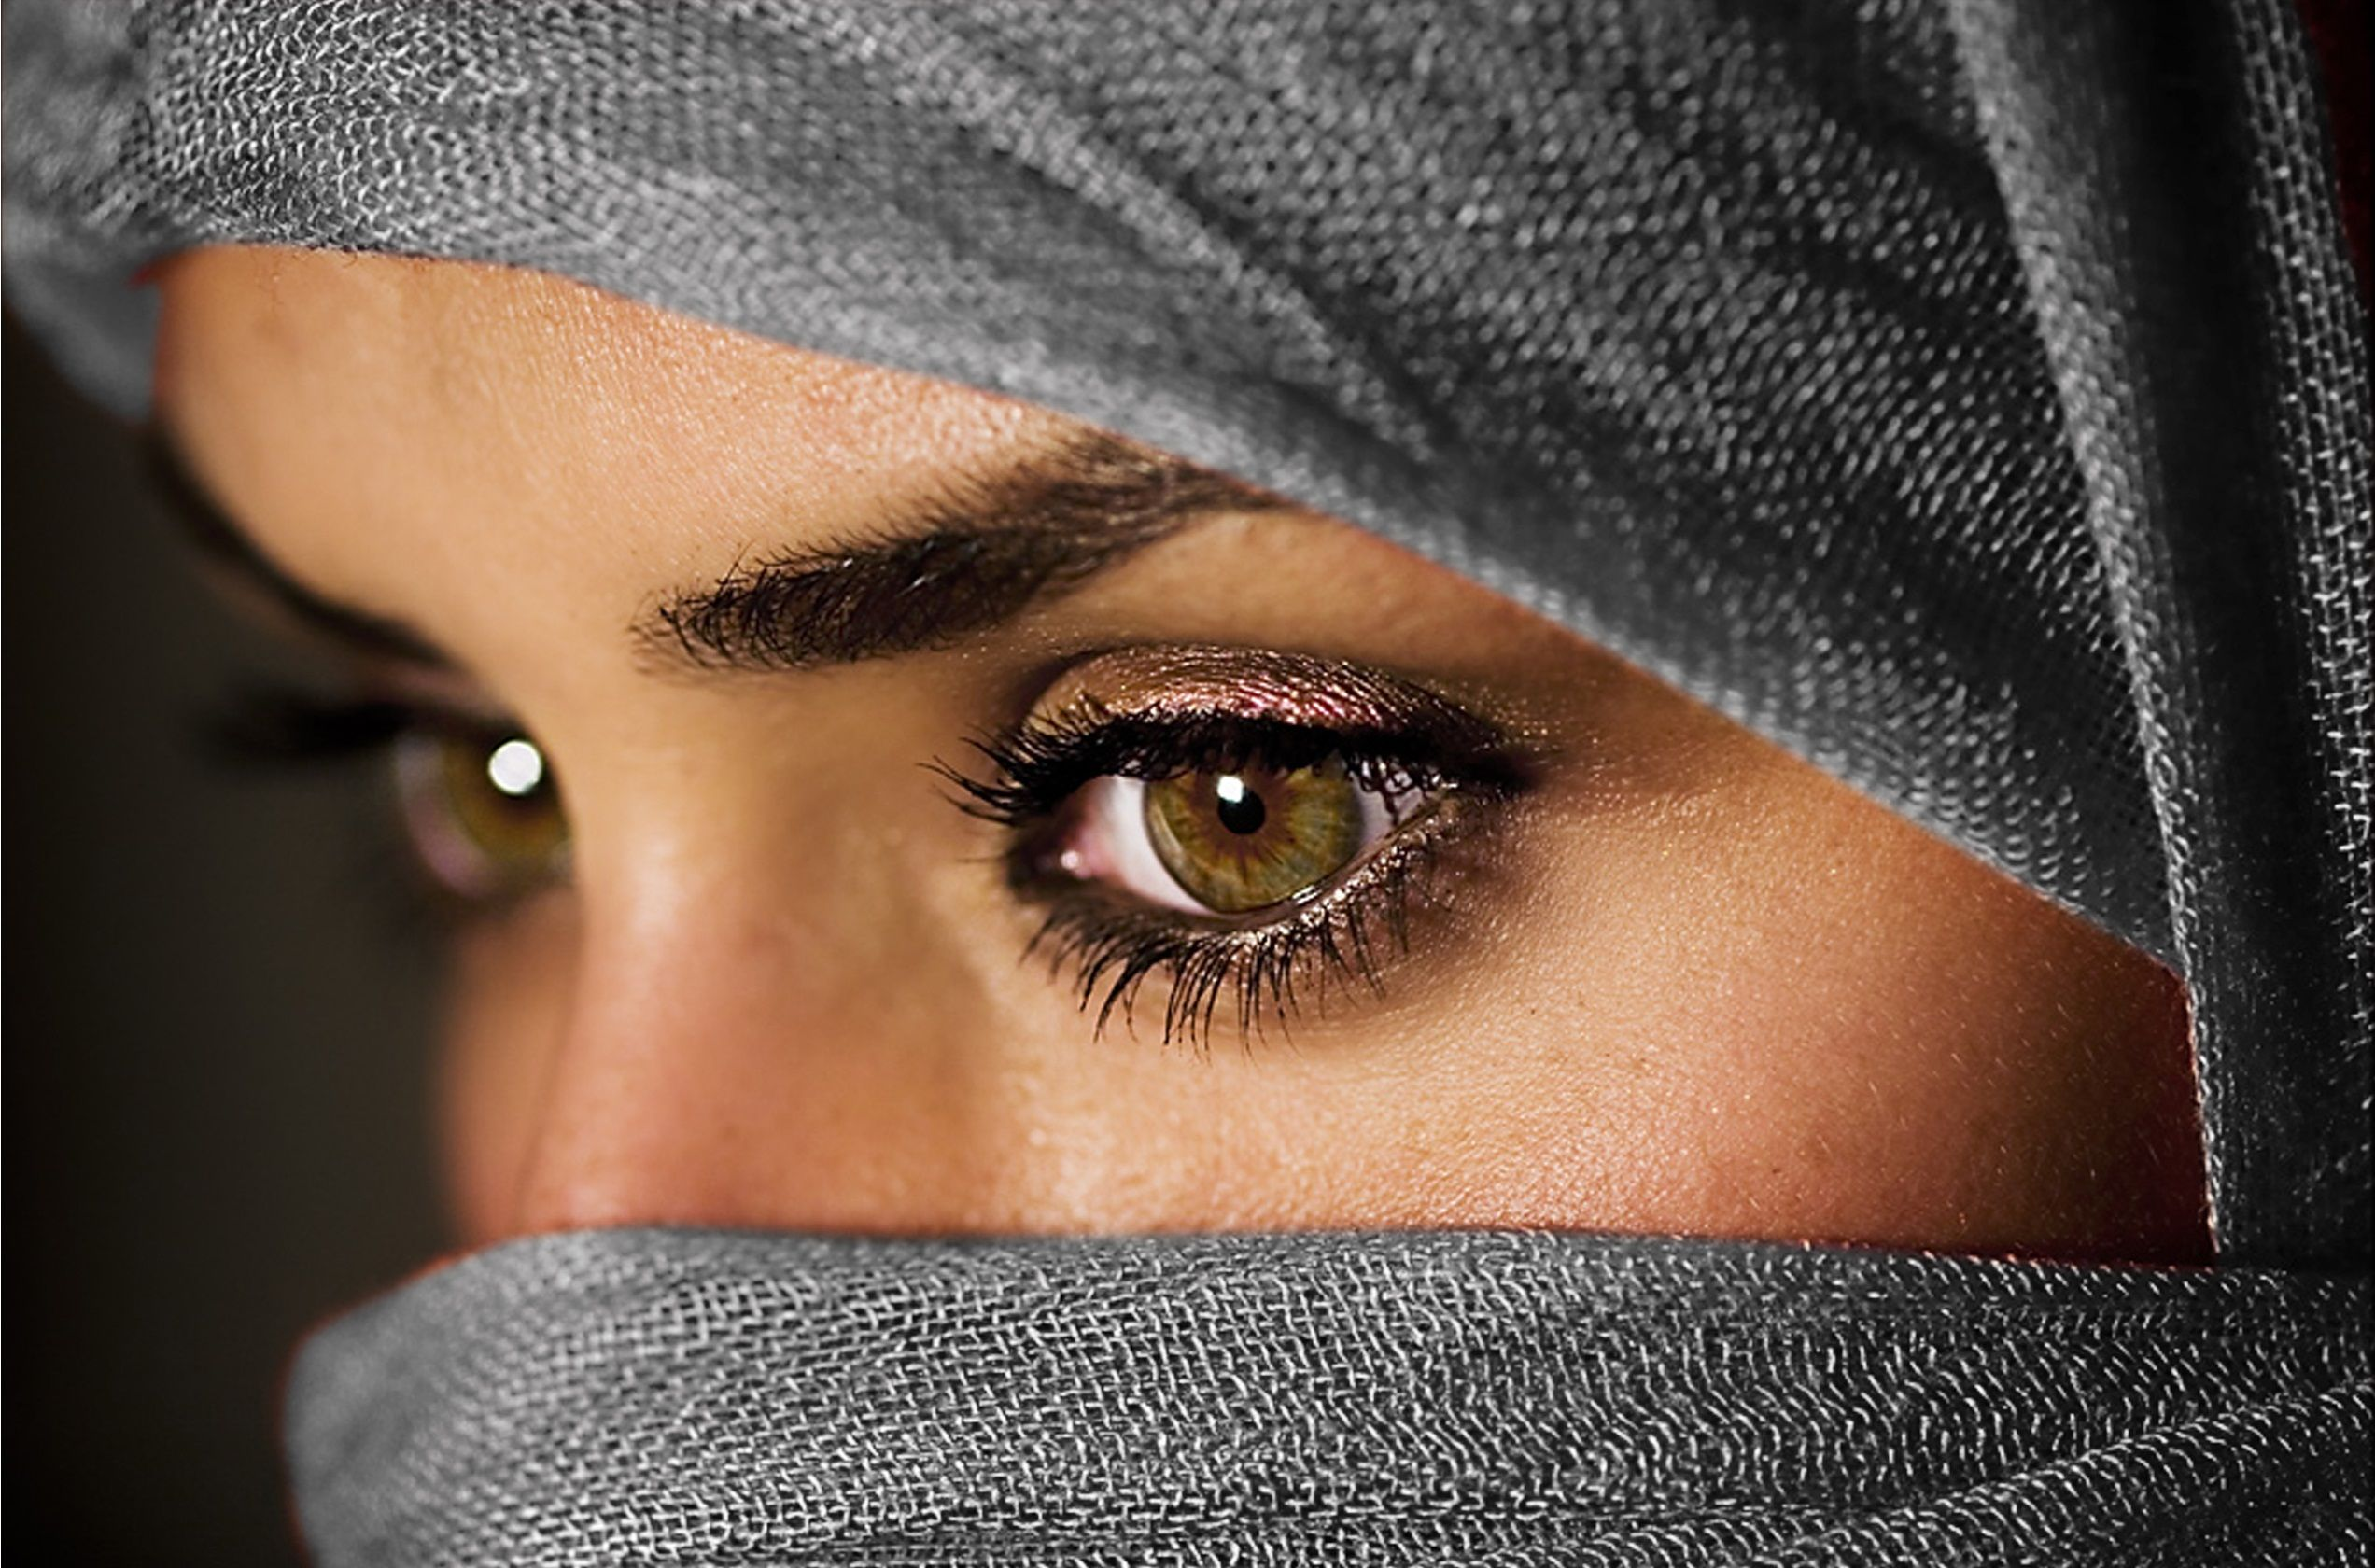 women eyes muslim islam hazel eyes scarfs faces hijab niqab